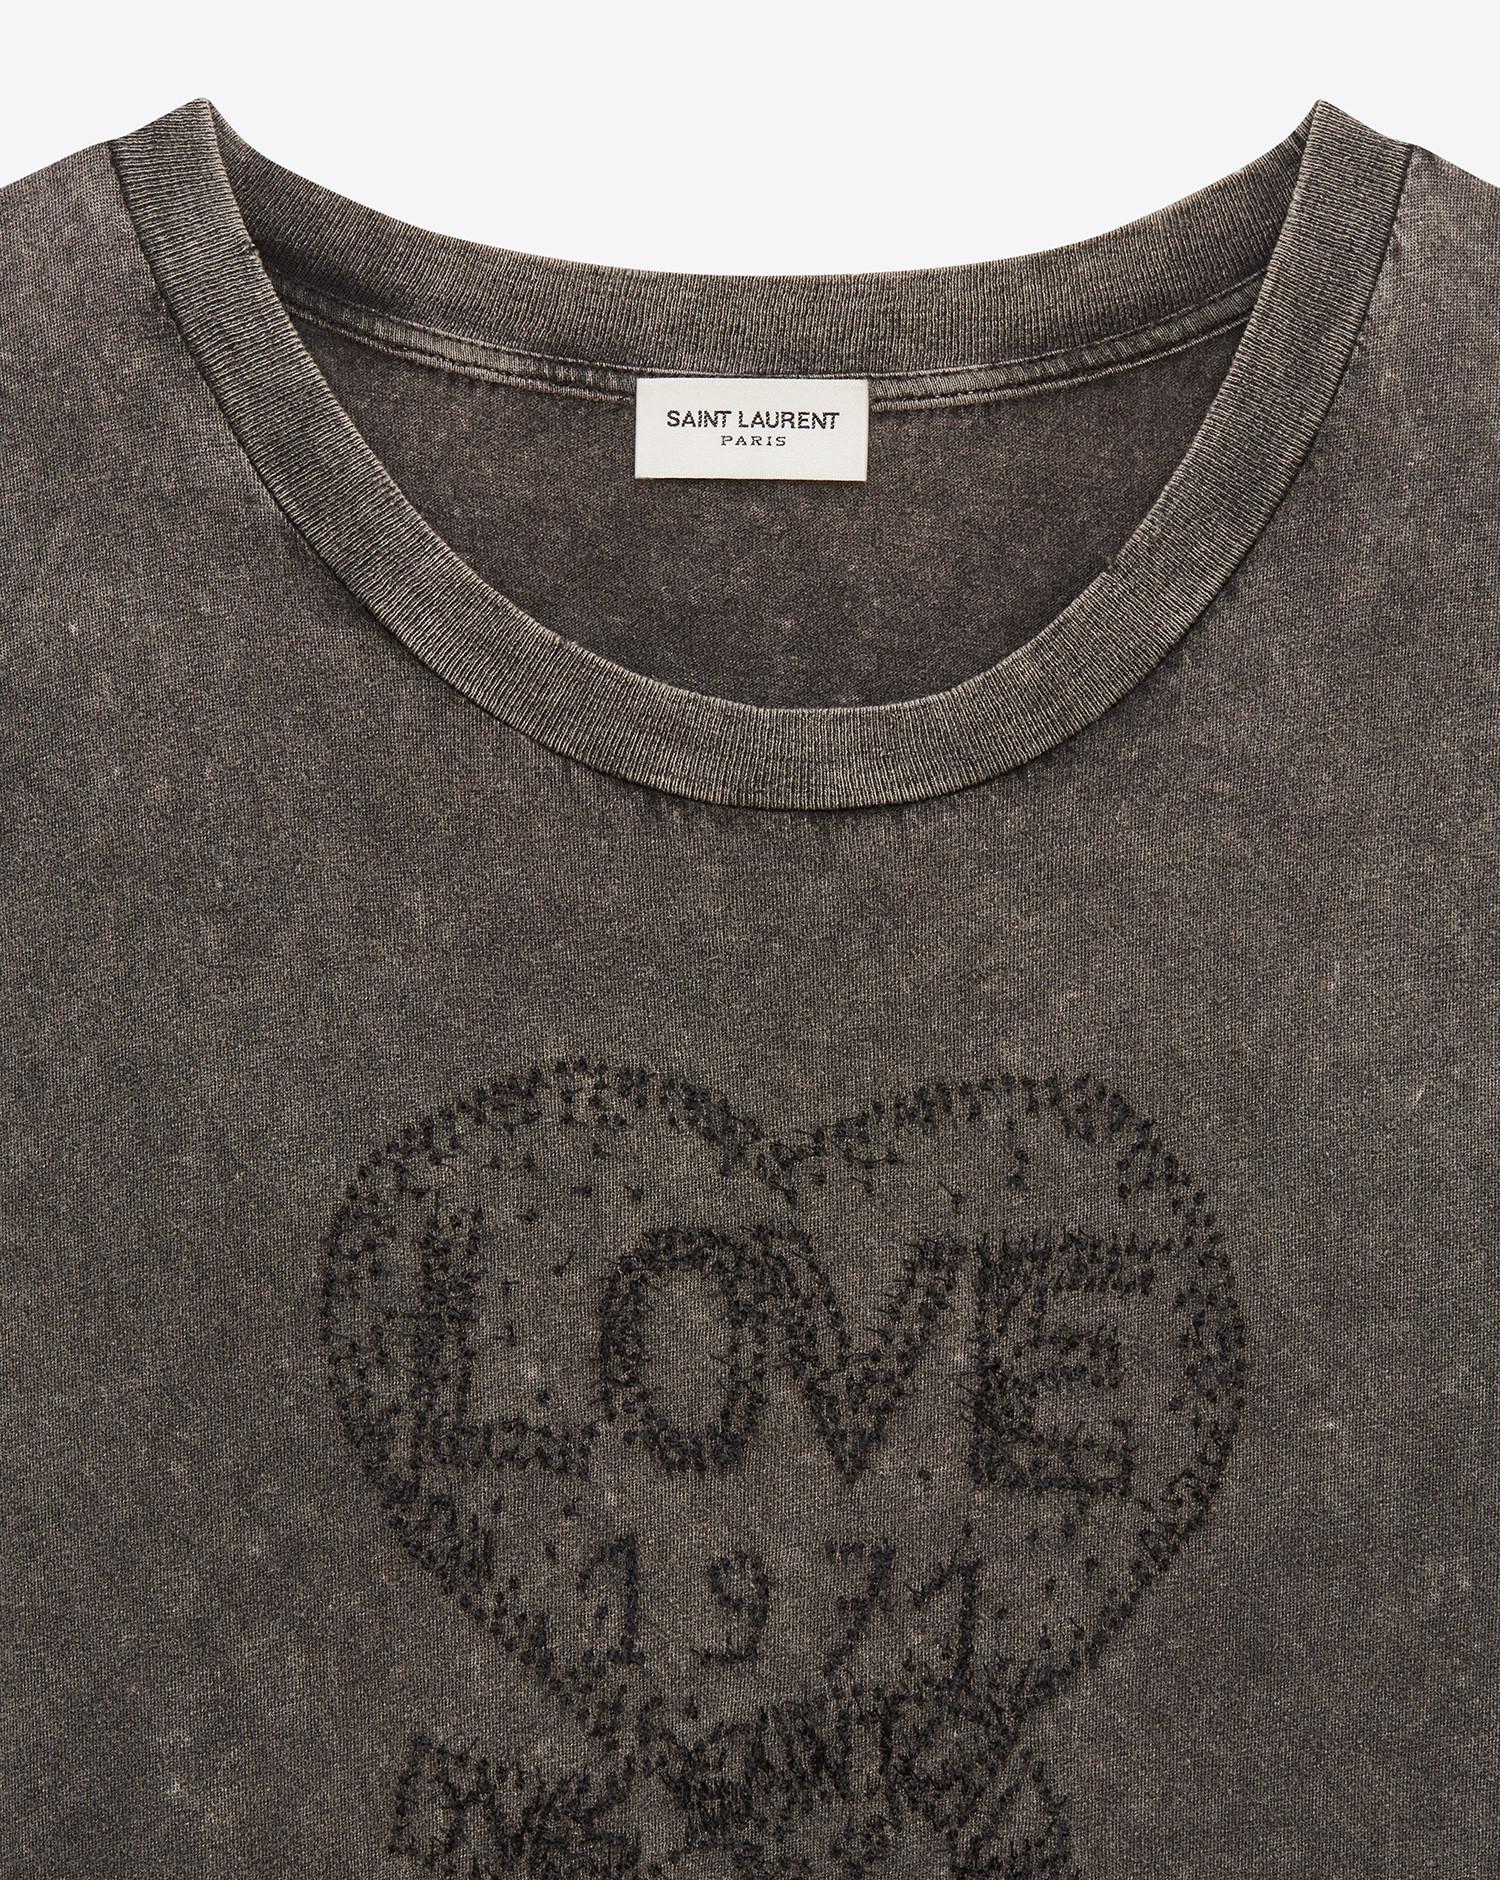 a1a1795044 Lyst - Saint Laurent T-shirt Embroidered With Love 1971 In Faded ...